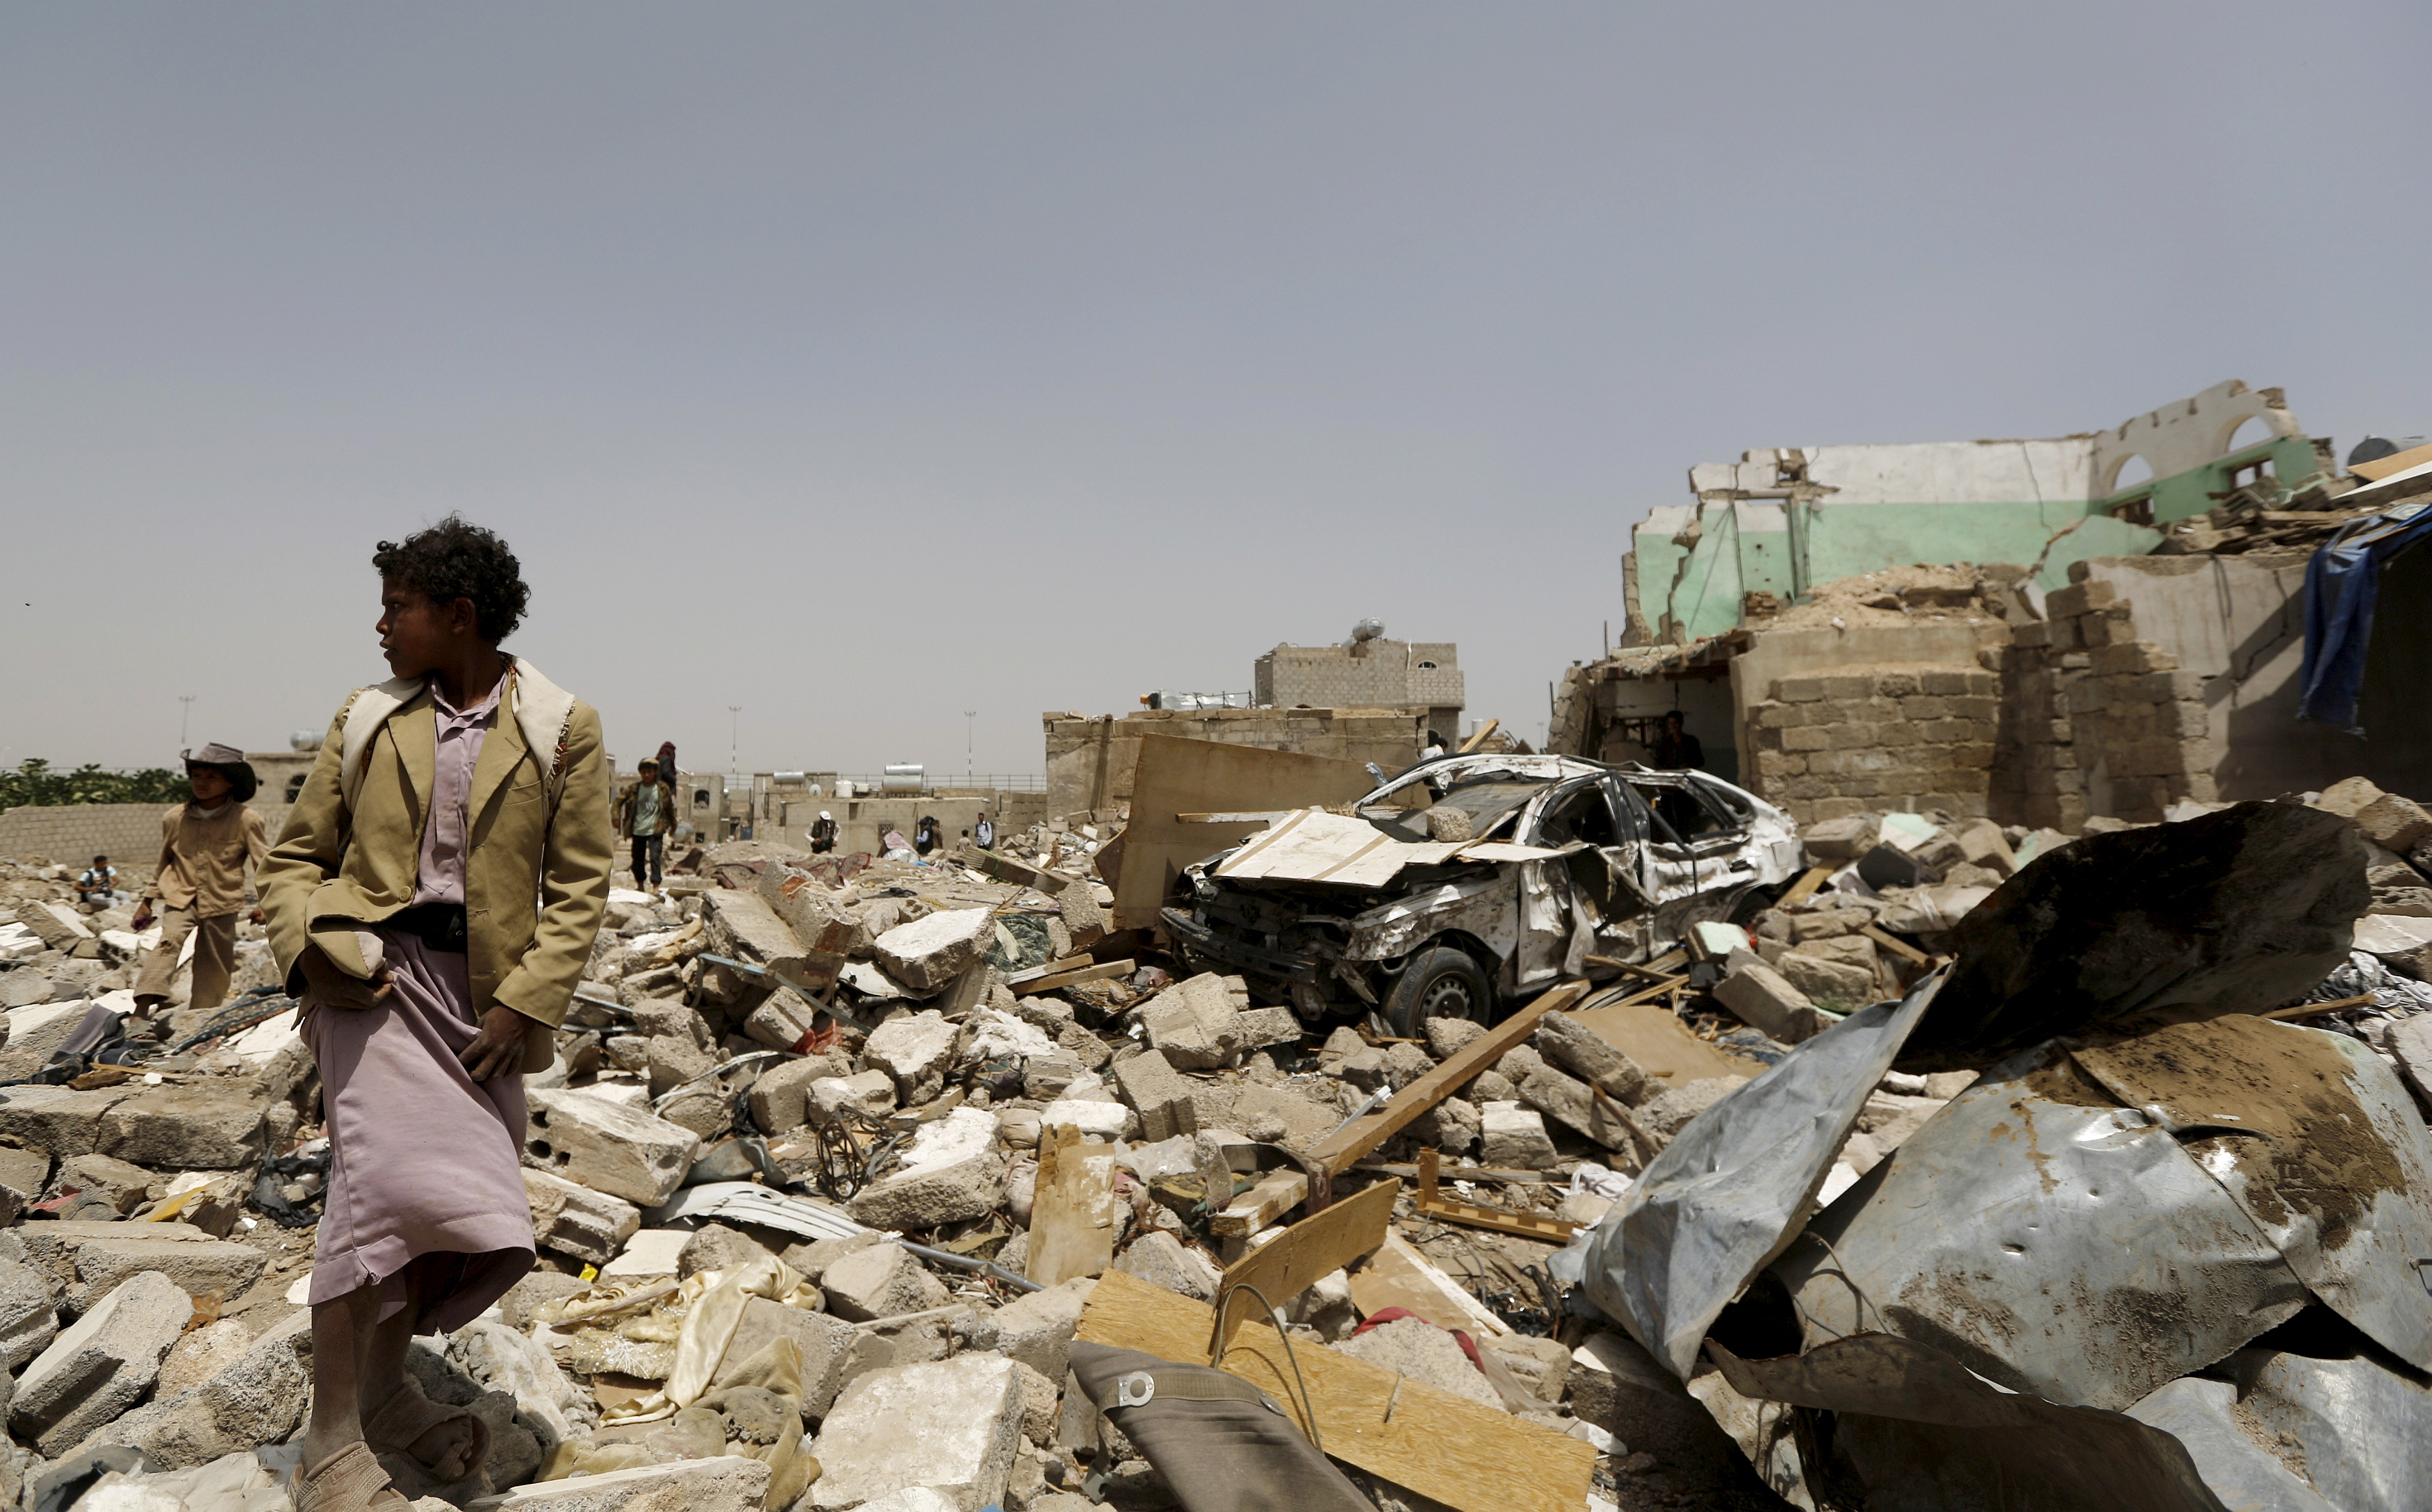 A boy walks at the site of a Saudi-led air strike that hit a residential areanear Sanaa airport, on May 18, 2015. Photo by Khaled Abdullah/Reuters